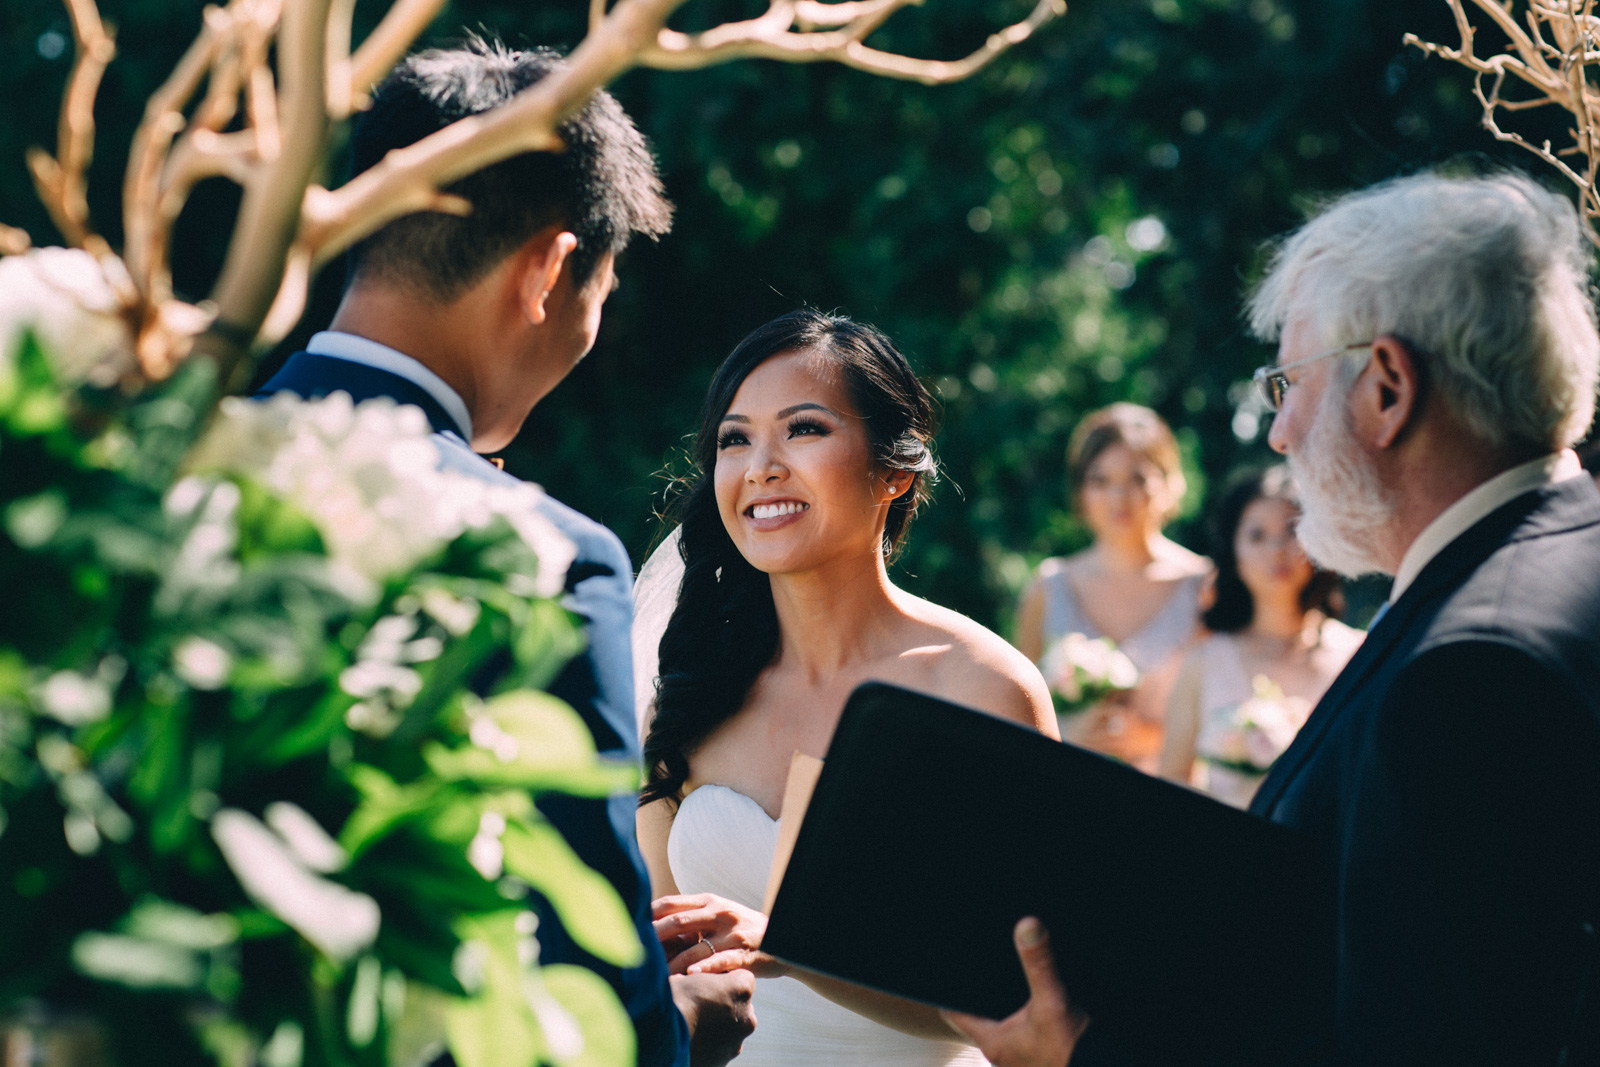 cambium-farms-wedding-photography-by-sam-wong-of-artanis-collective_36